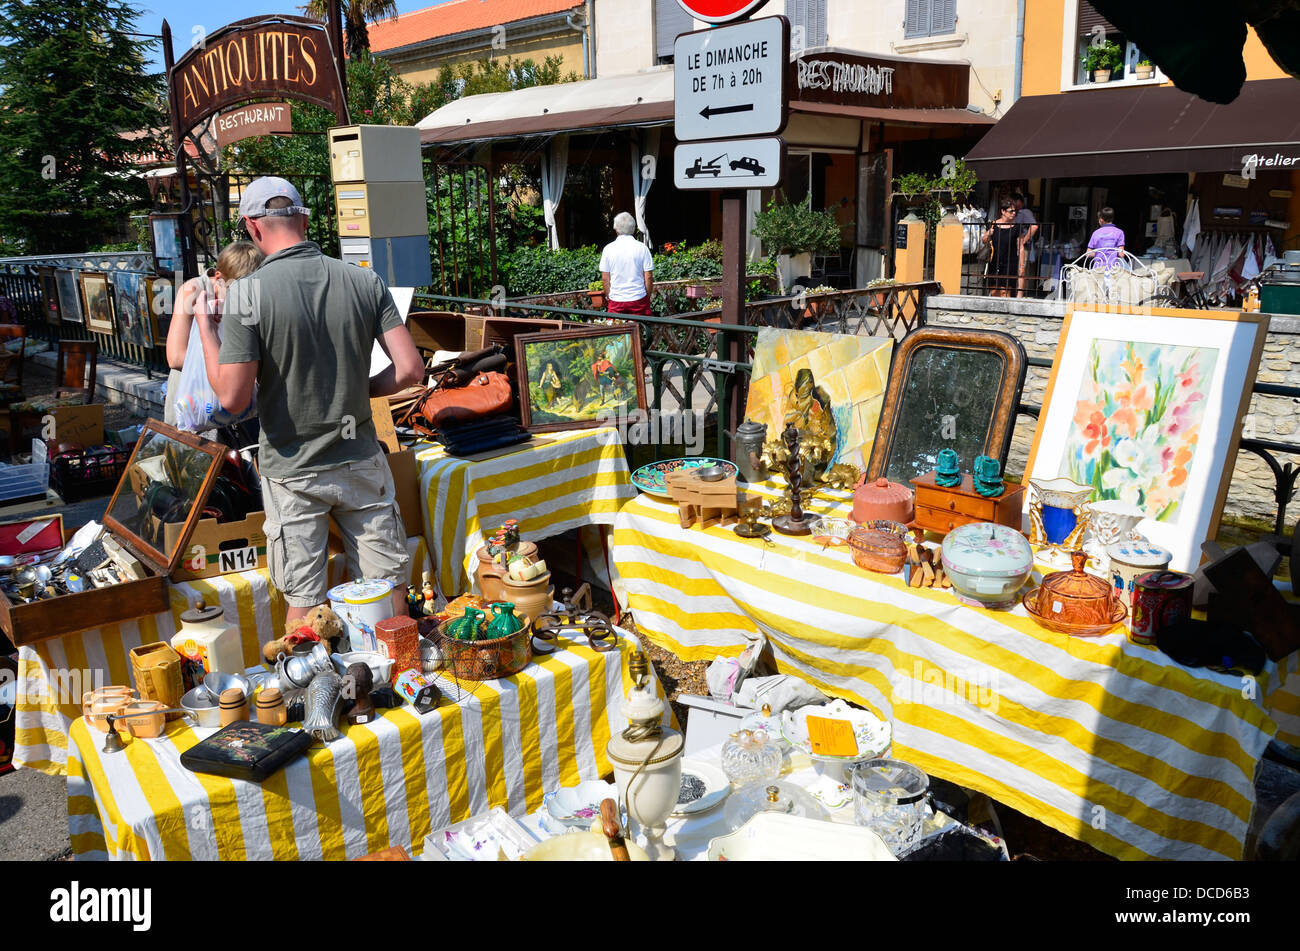 L'isle Sur La Sorgue: European Antiques Capital, Antique Market Vaucluse In  Provence